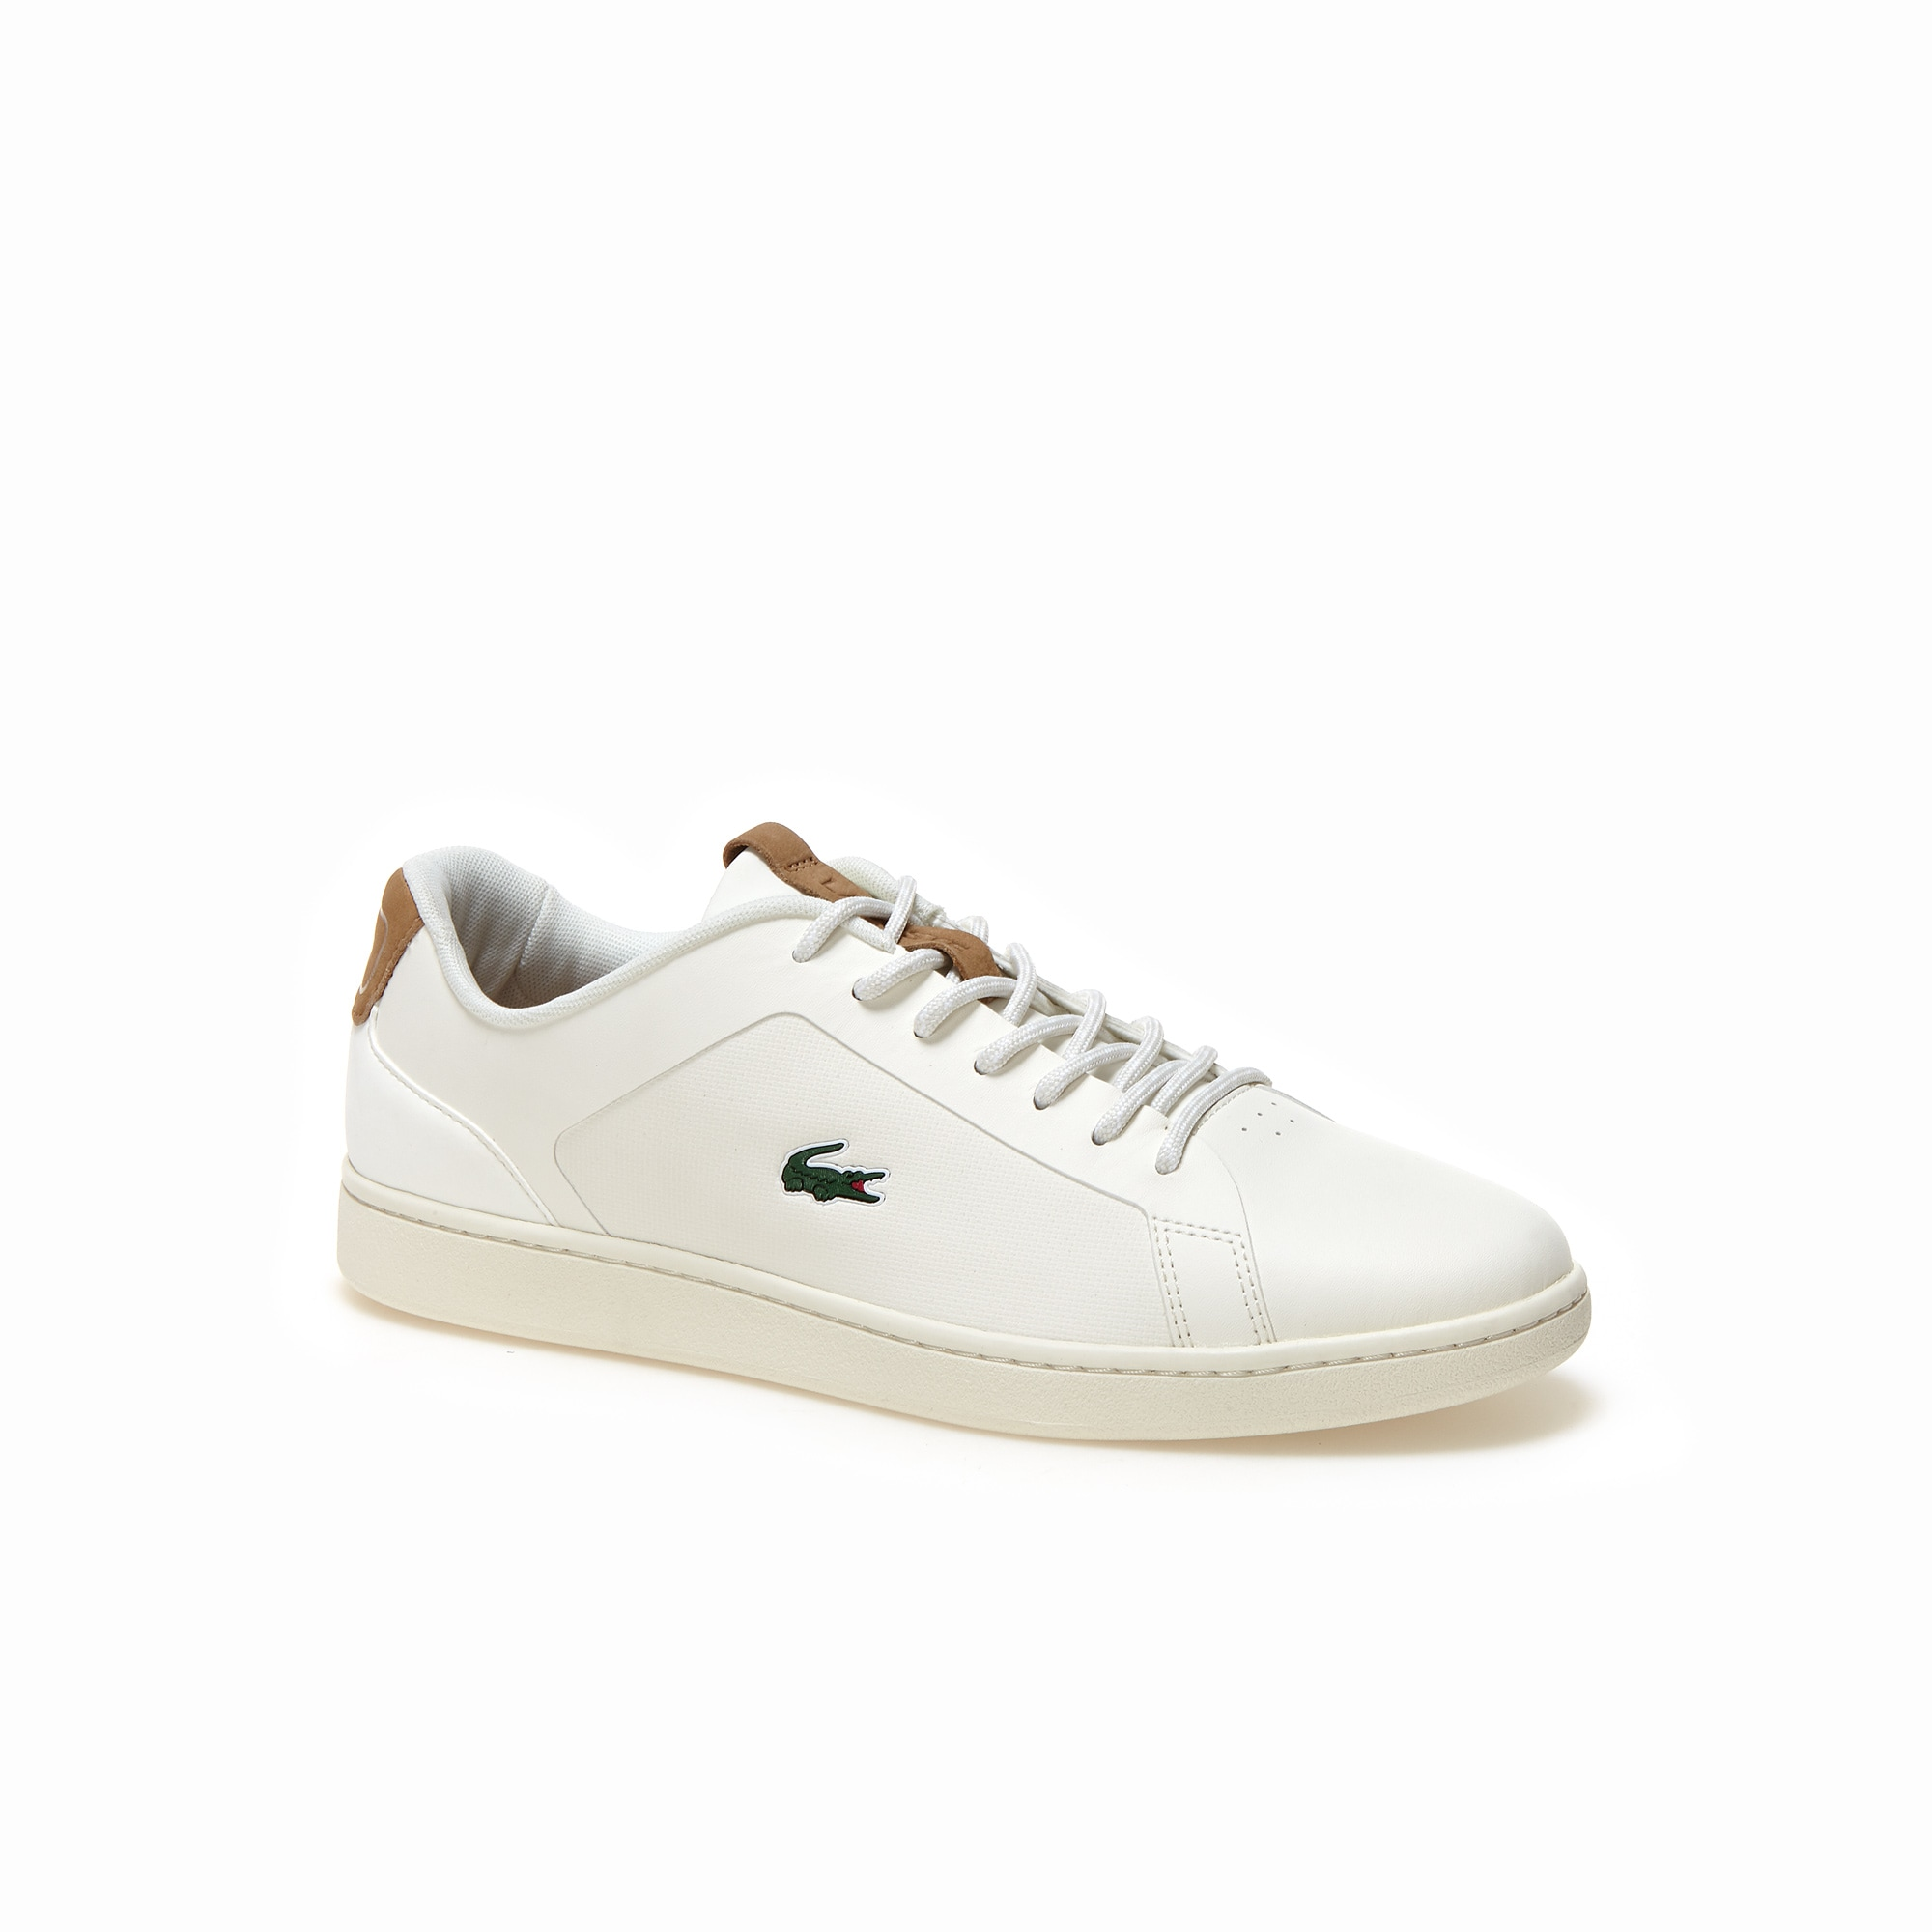 Men's Endliner Synthetic Sneakers